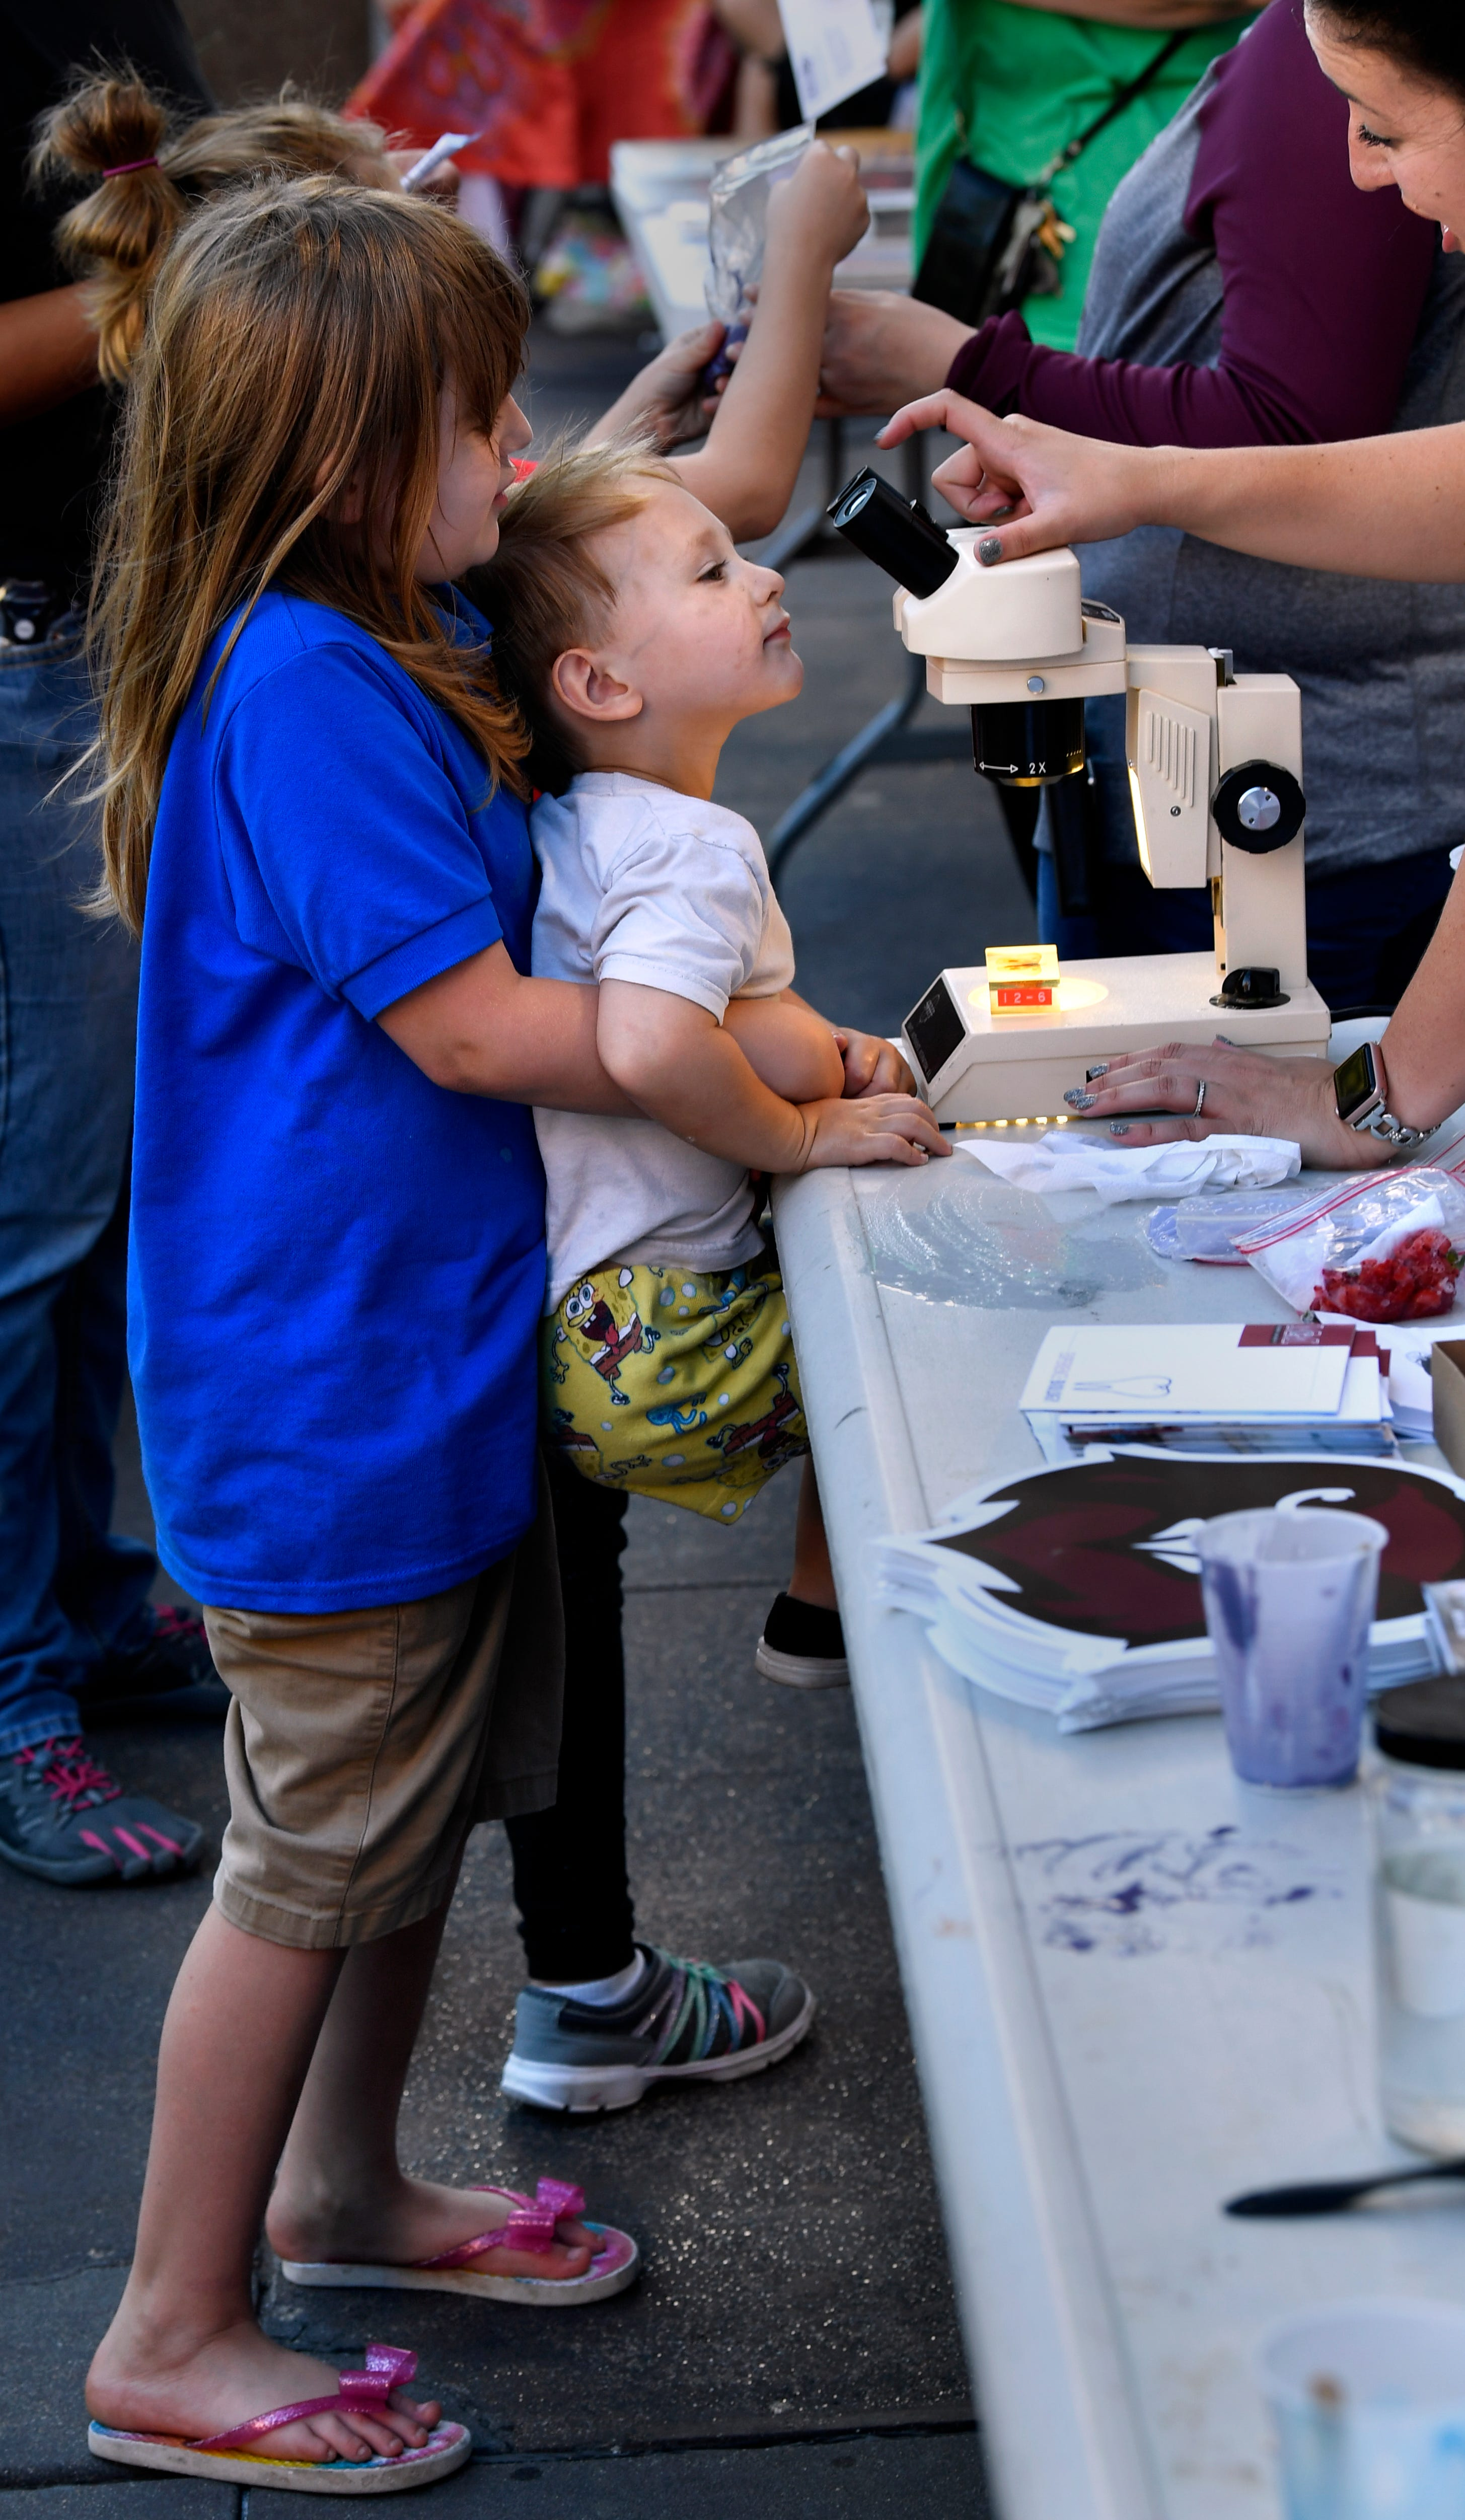 Aeris Moss, 6, lifts her two-year-old brother Eden up to a microscope Thursday during ArtWalk in downtown Abilene. ArtWalk's theme this month was STEAMpunk, celebrating Science, Technology, Engineering, Art and Mathematics.